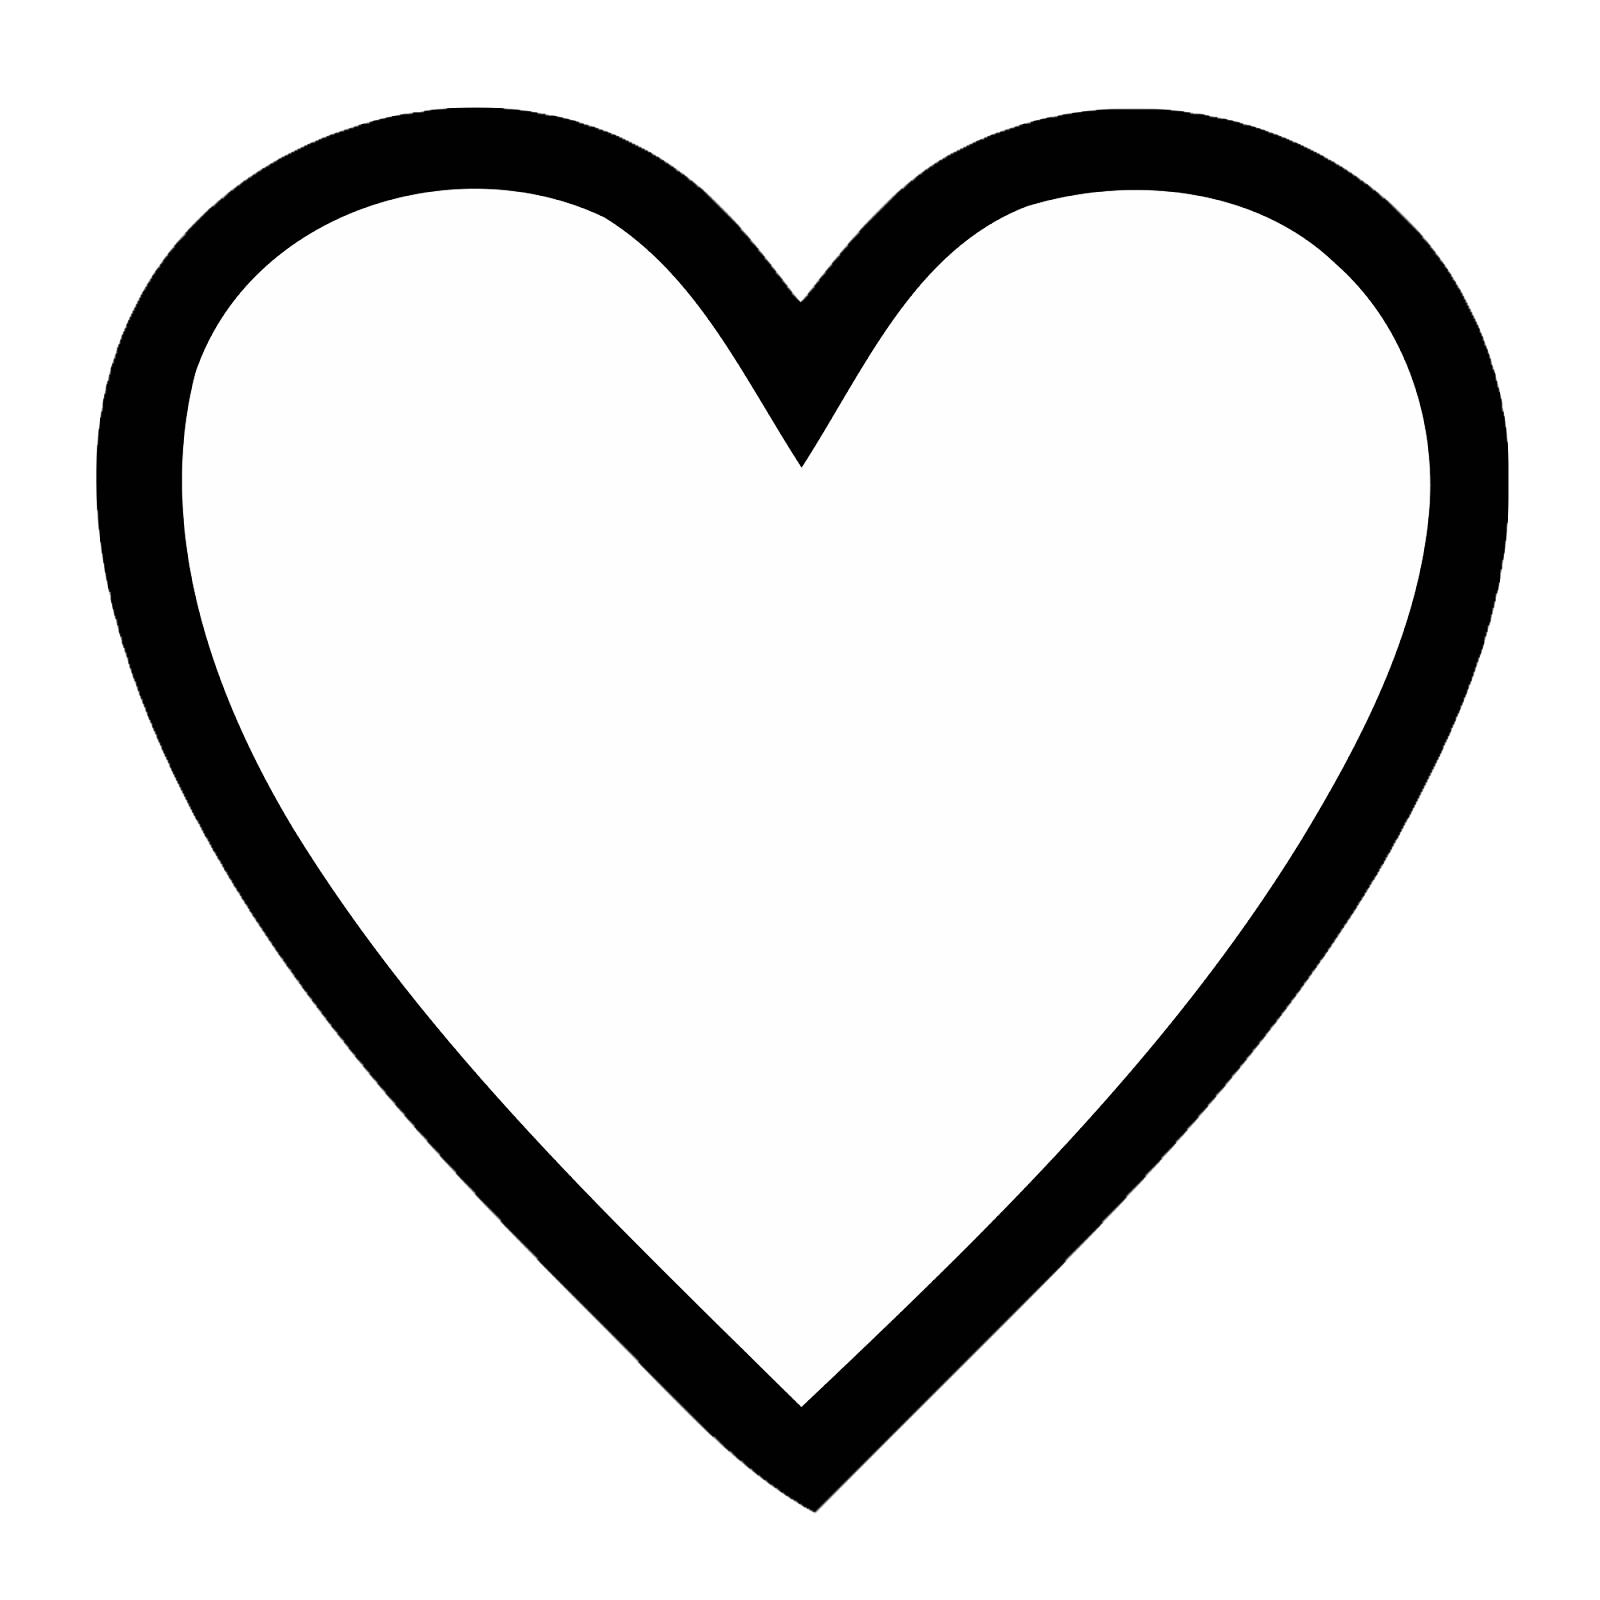 Line Art Of Heart : Heart line drawing clipart best